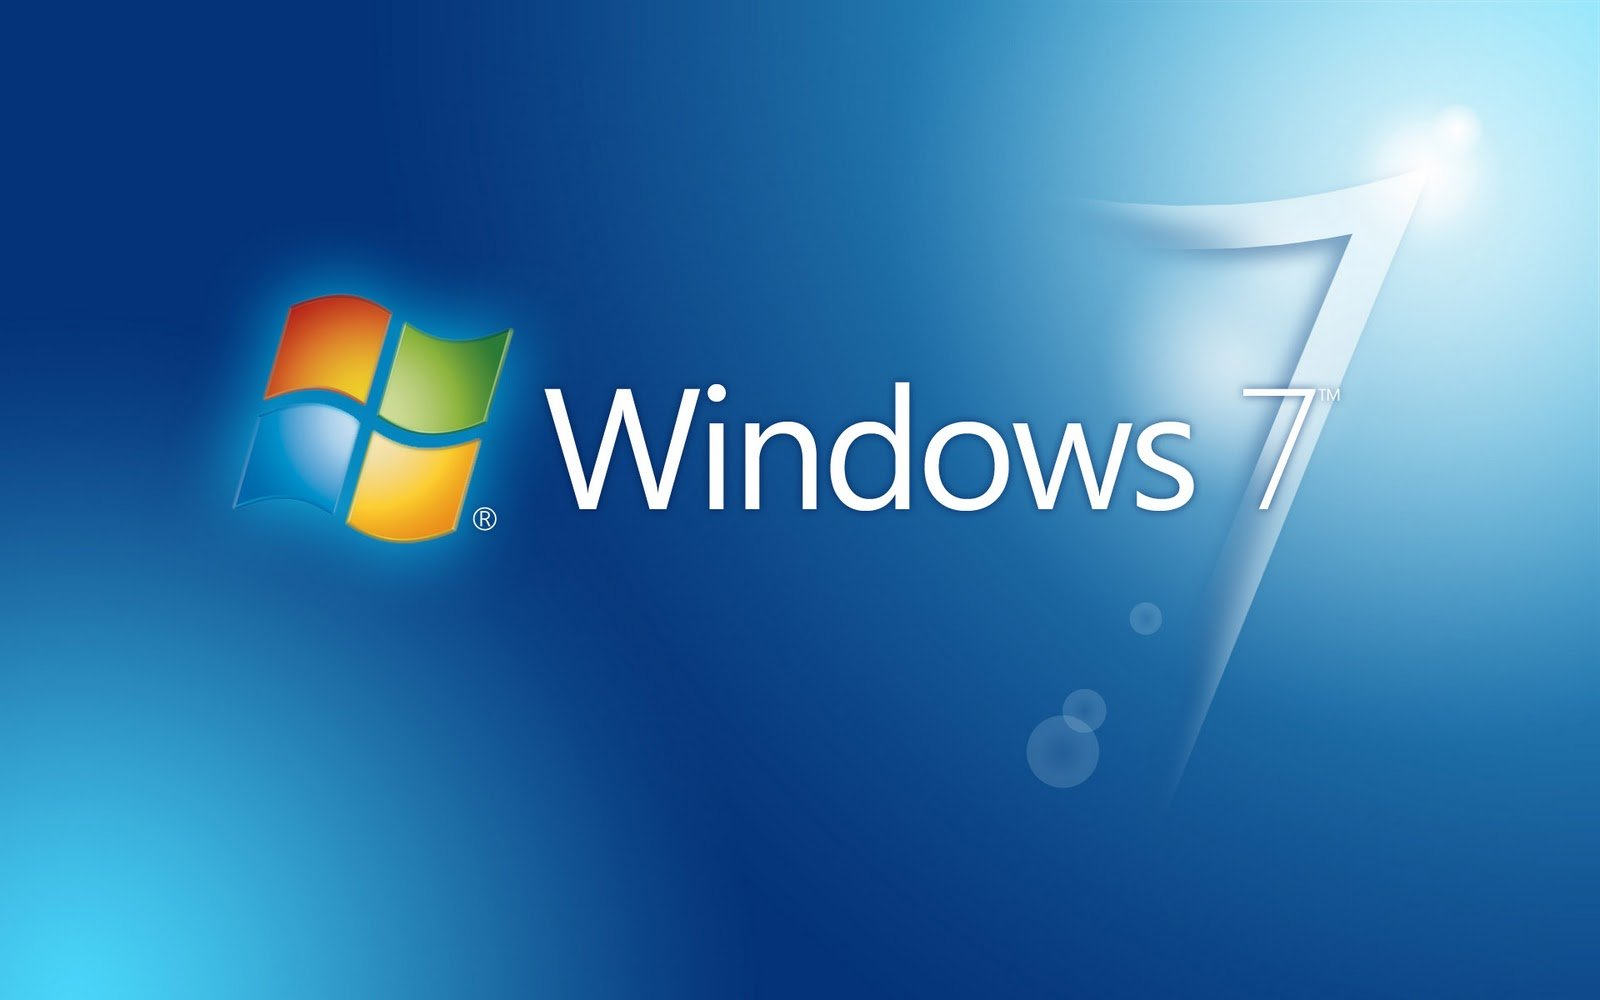 live wallpapers for windows 7 free download full version